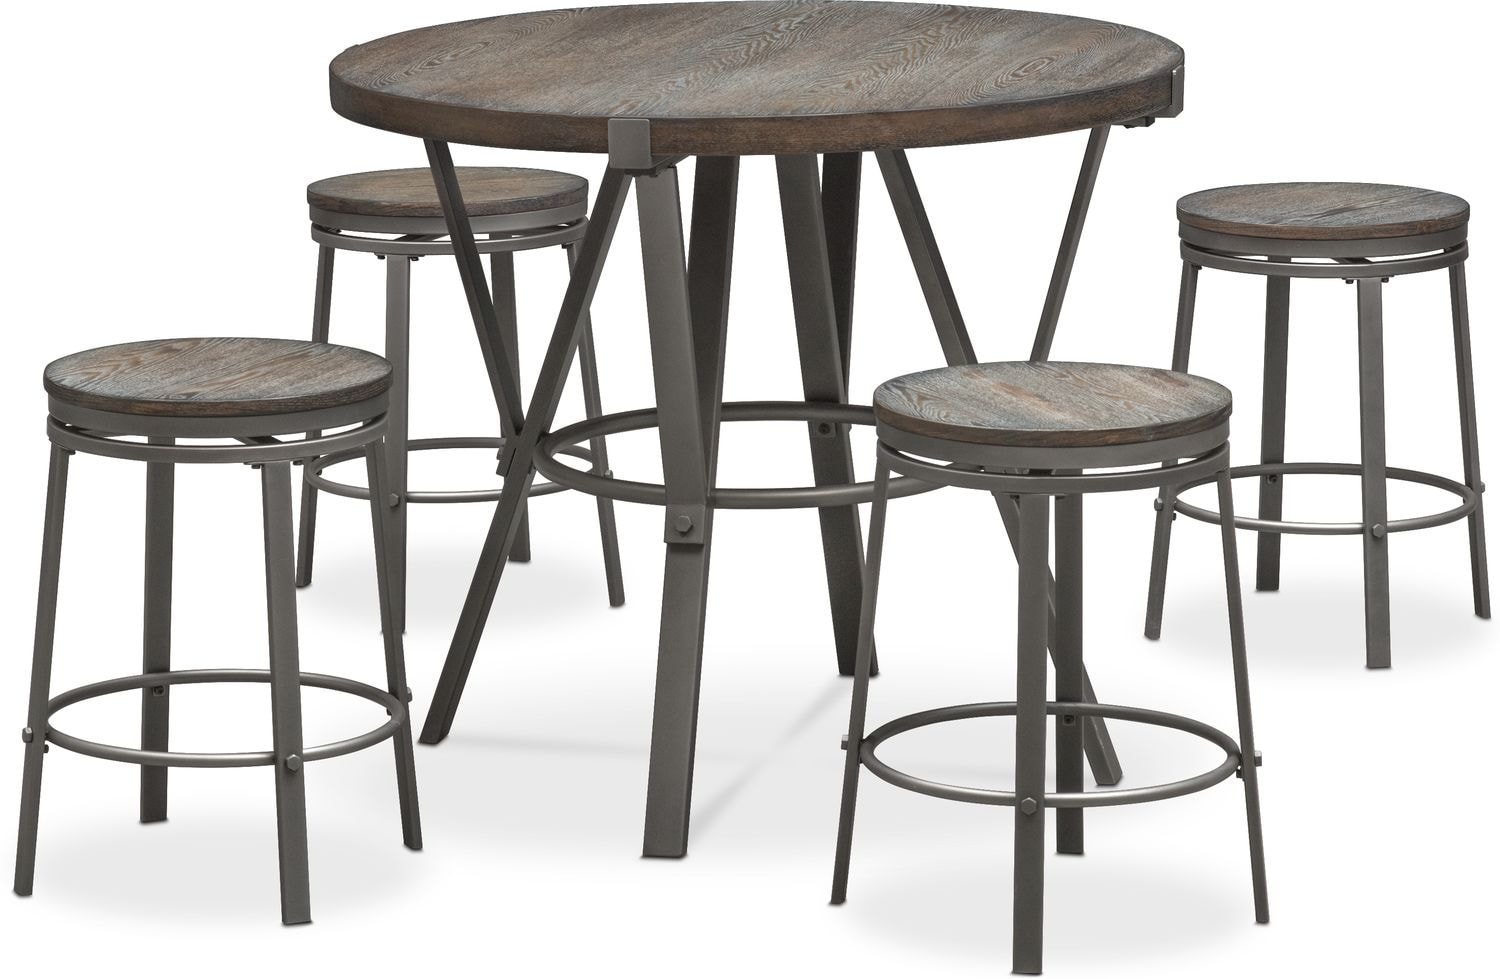 Beau The Stratton Collection   Ash